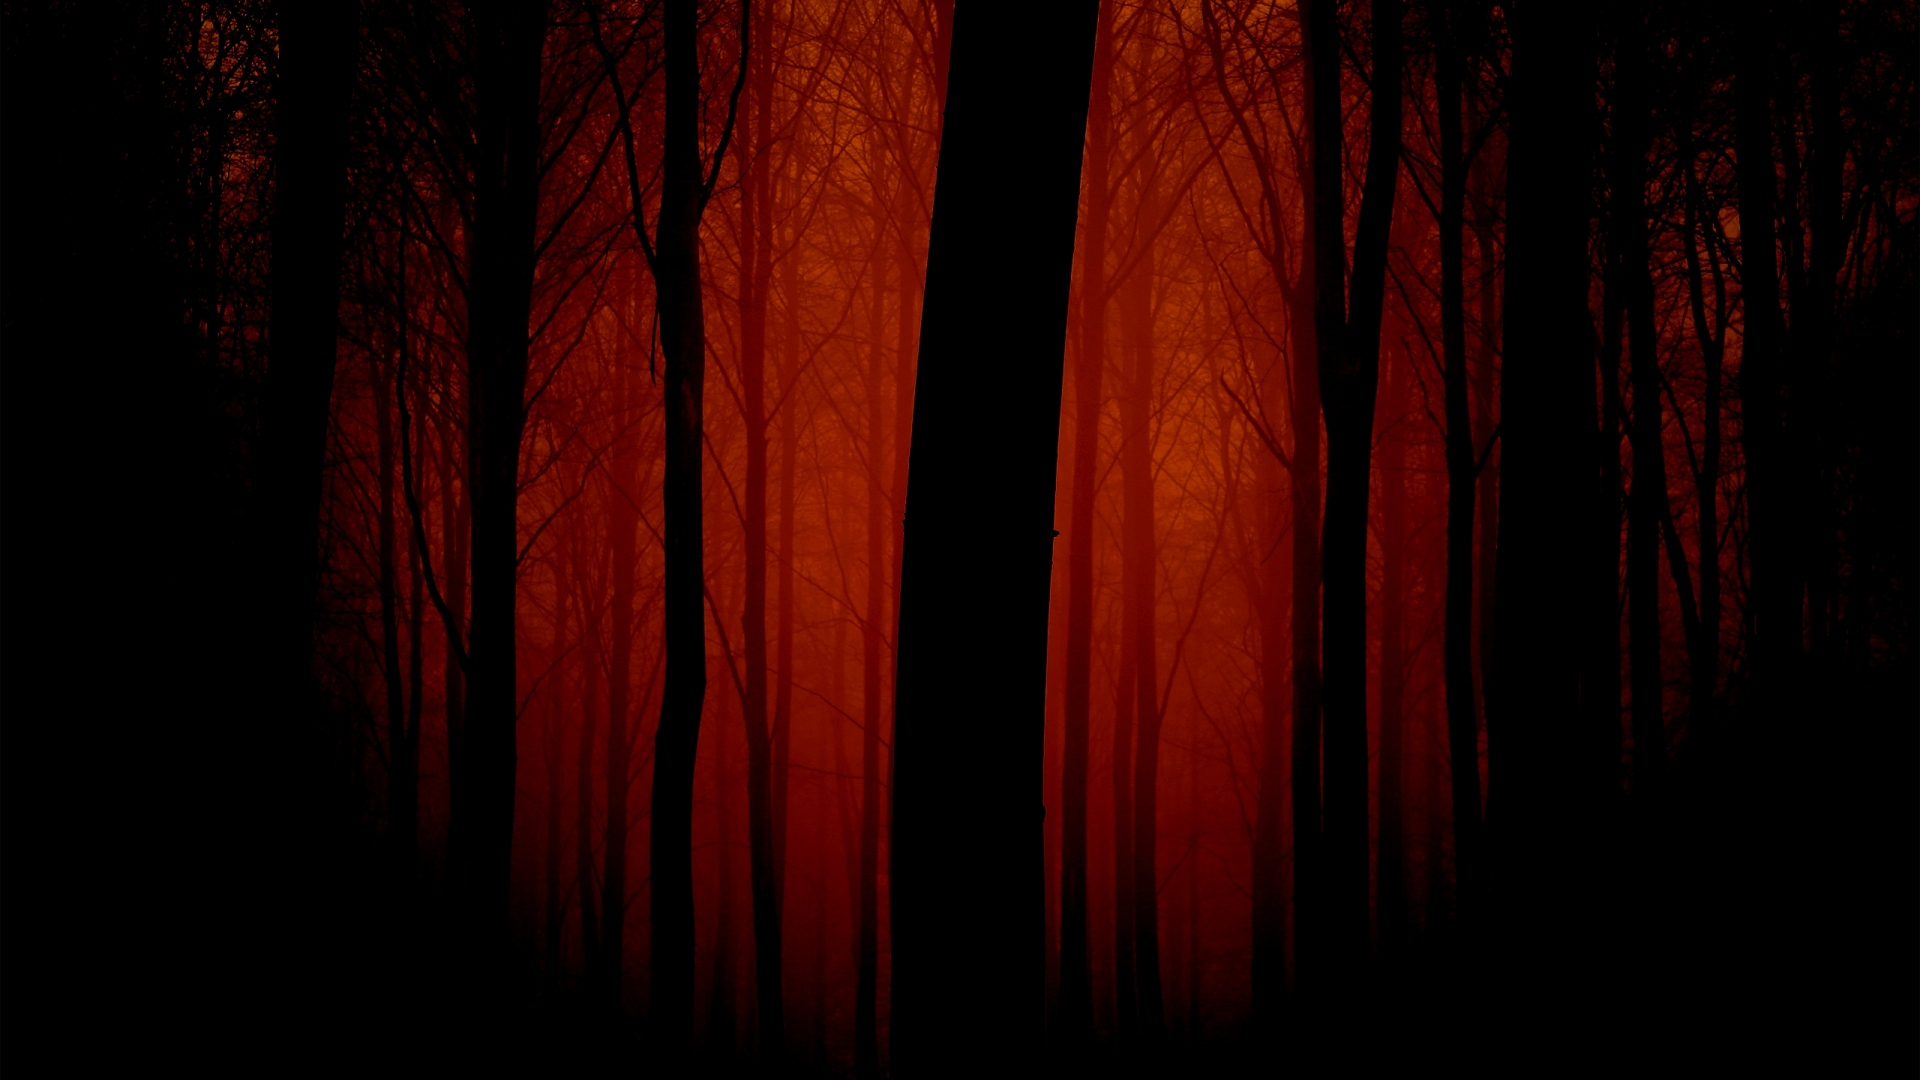 red scary forest digital art wallpaper background 64315 66484 hd wallpapers